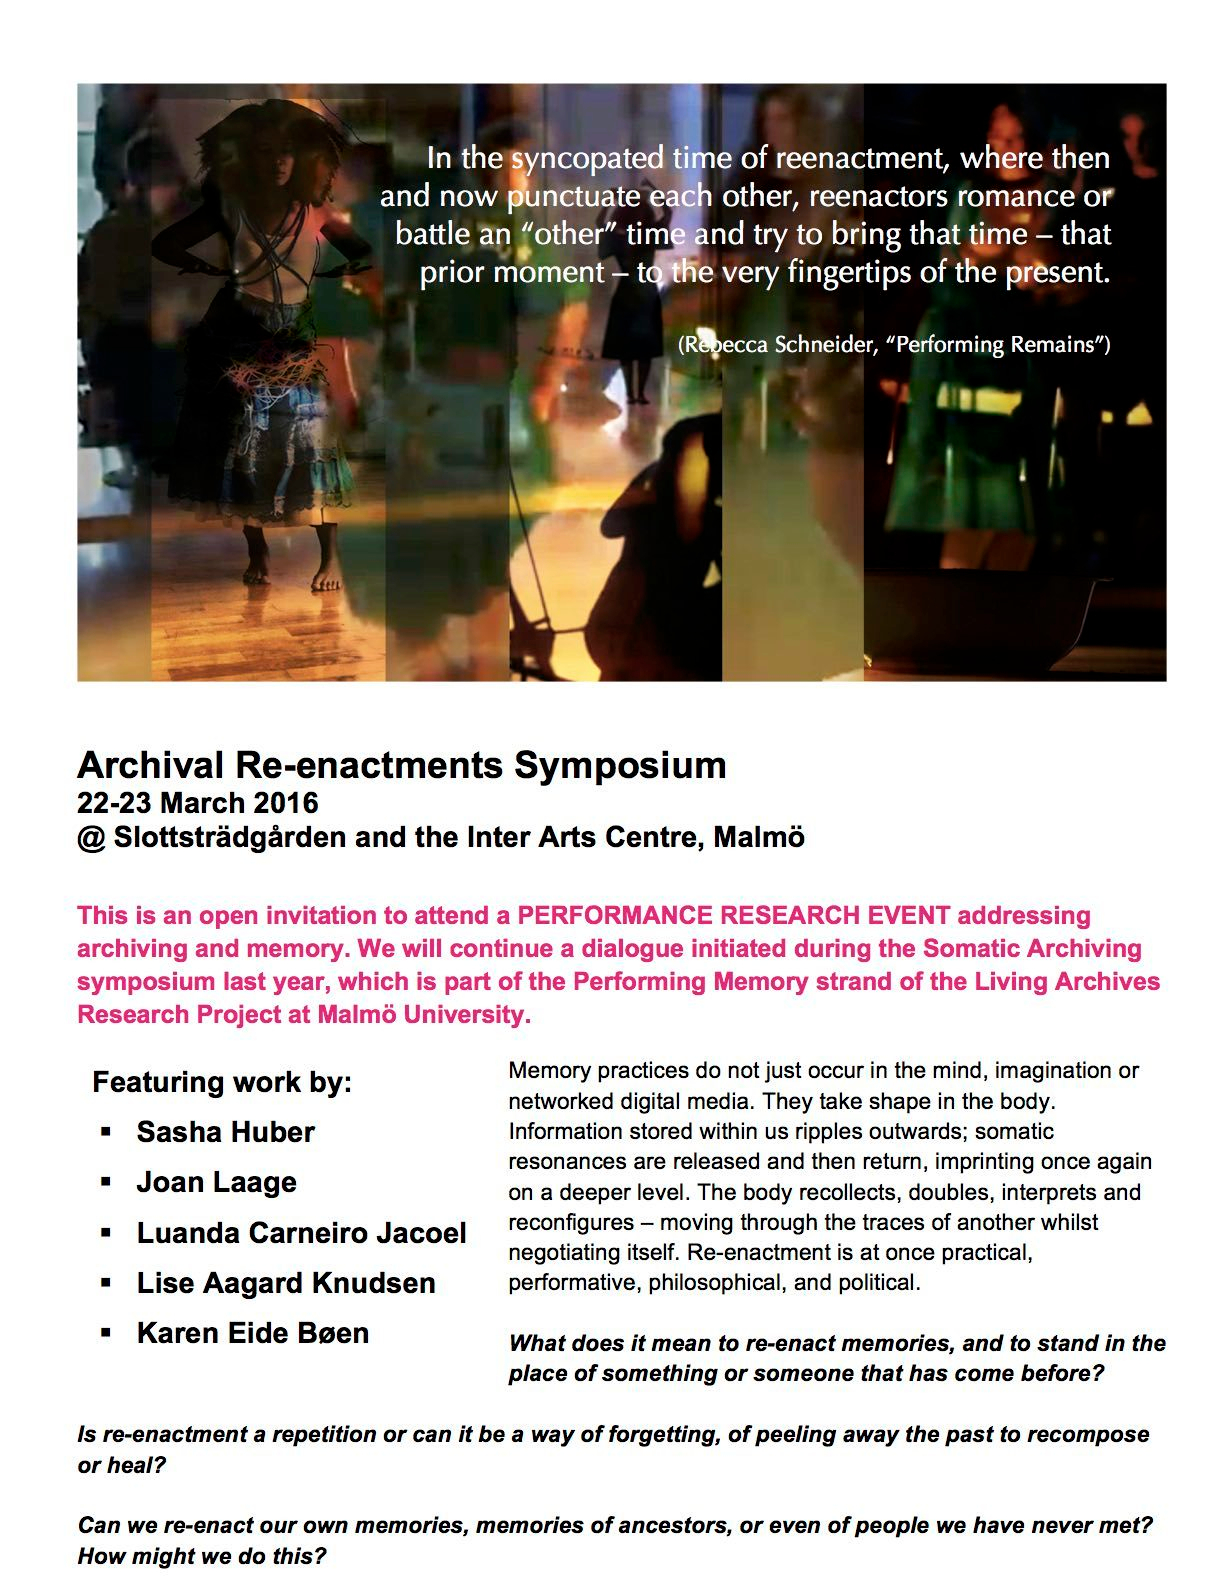 re-enactments-symposium-infosheet_draft02march16-2.jpg